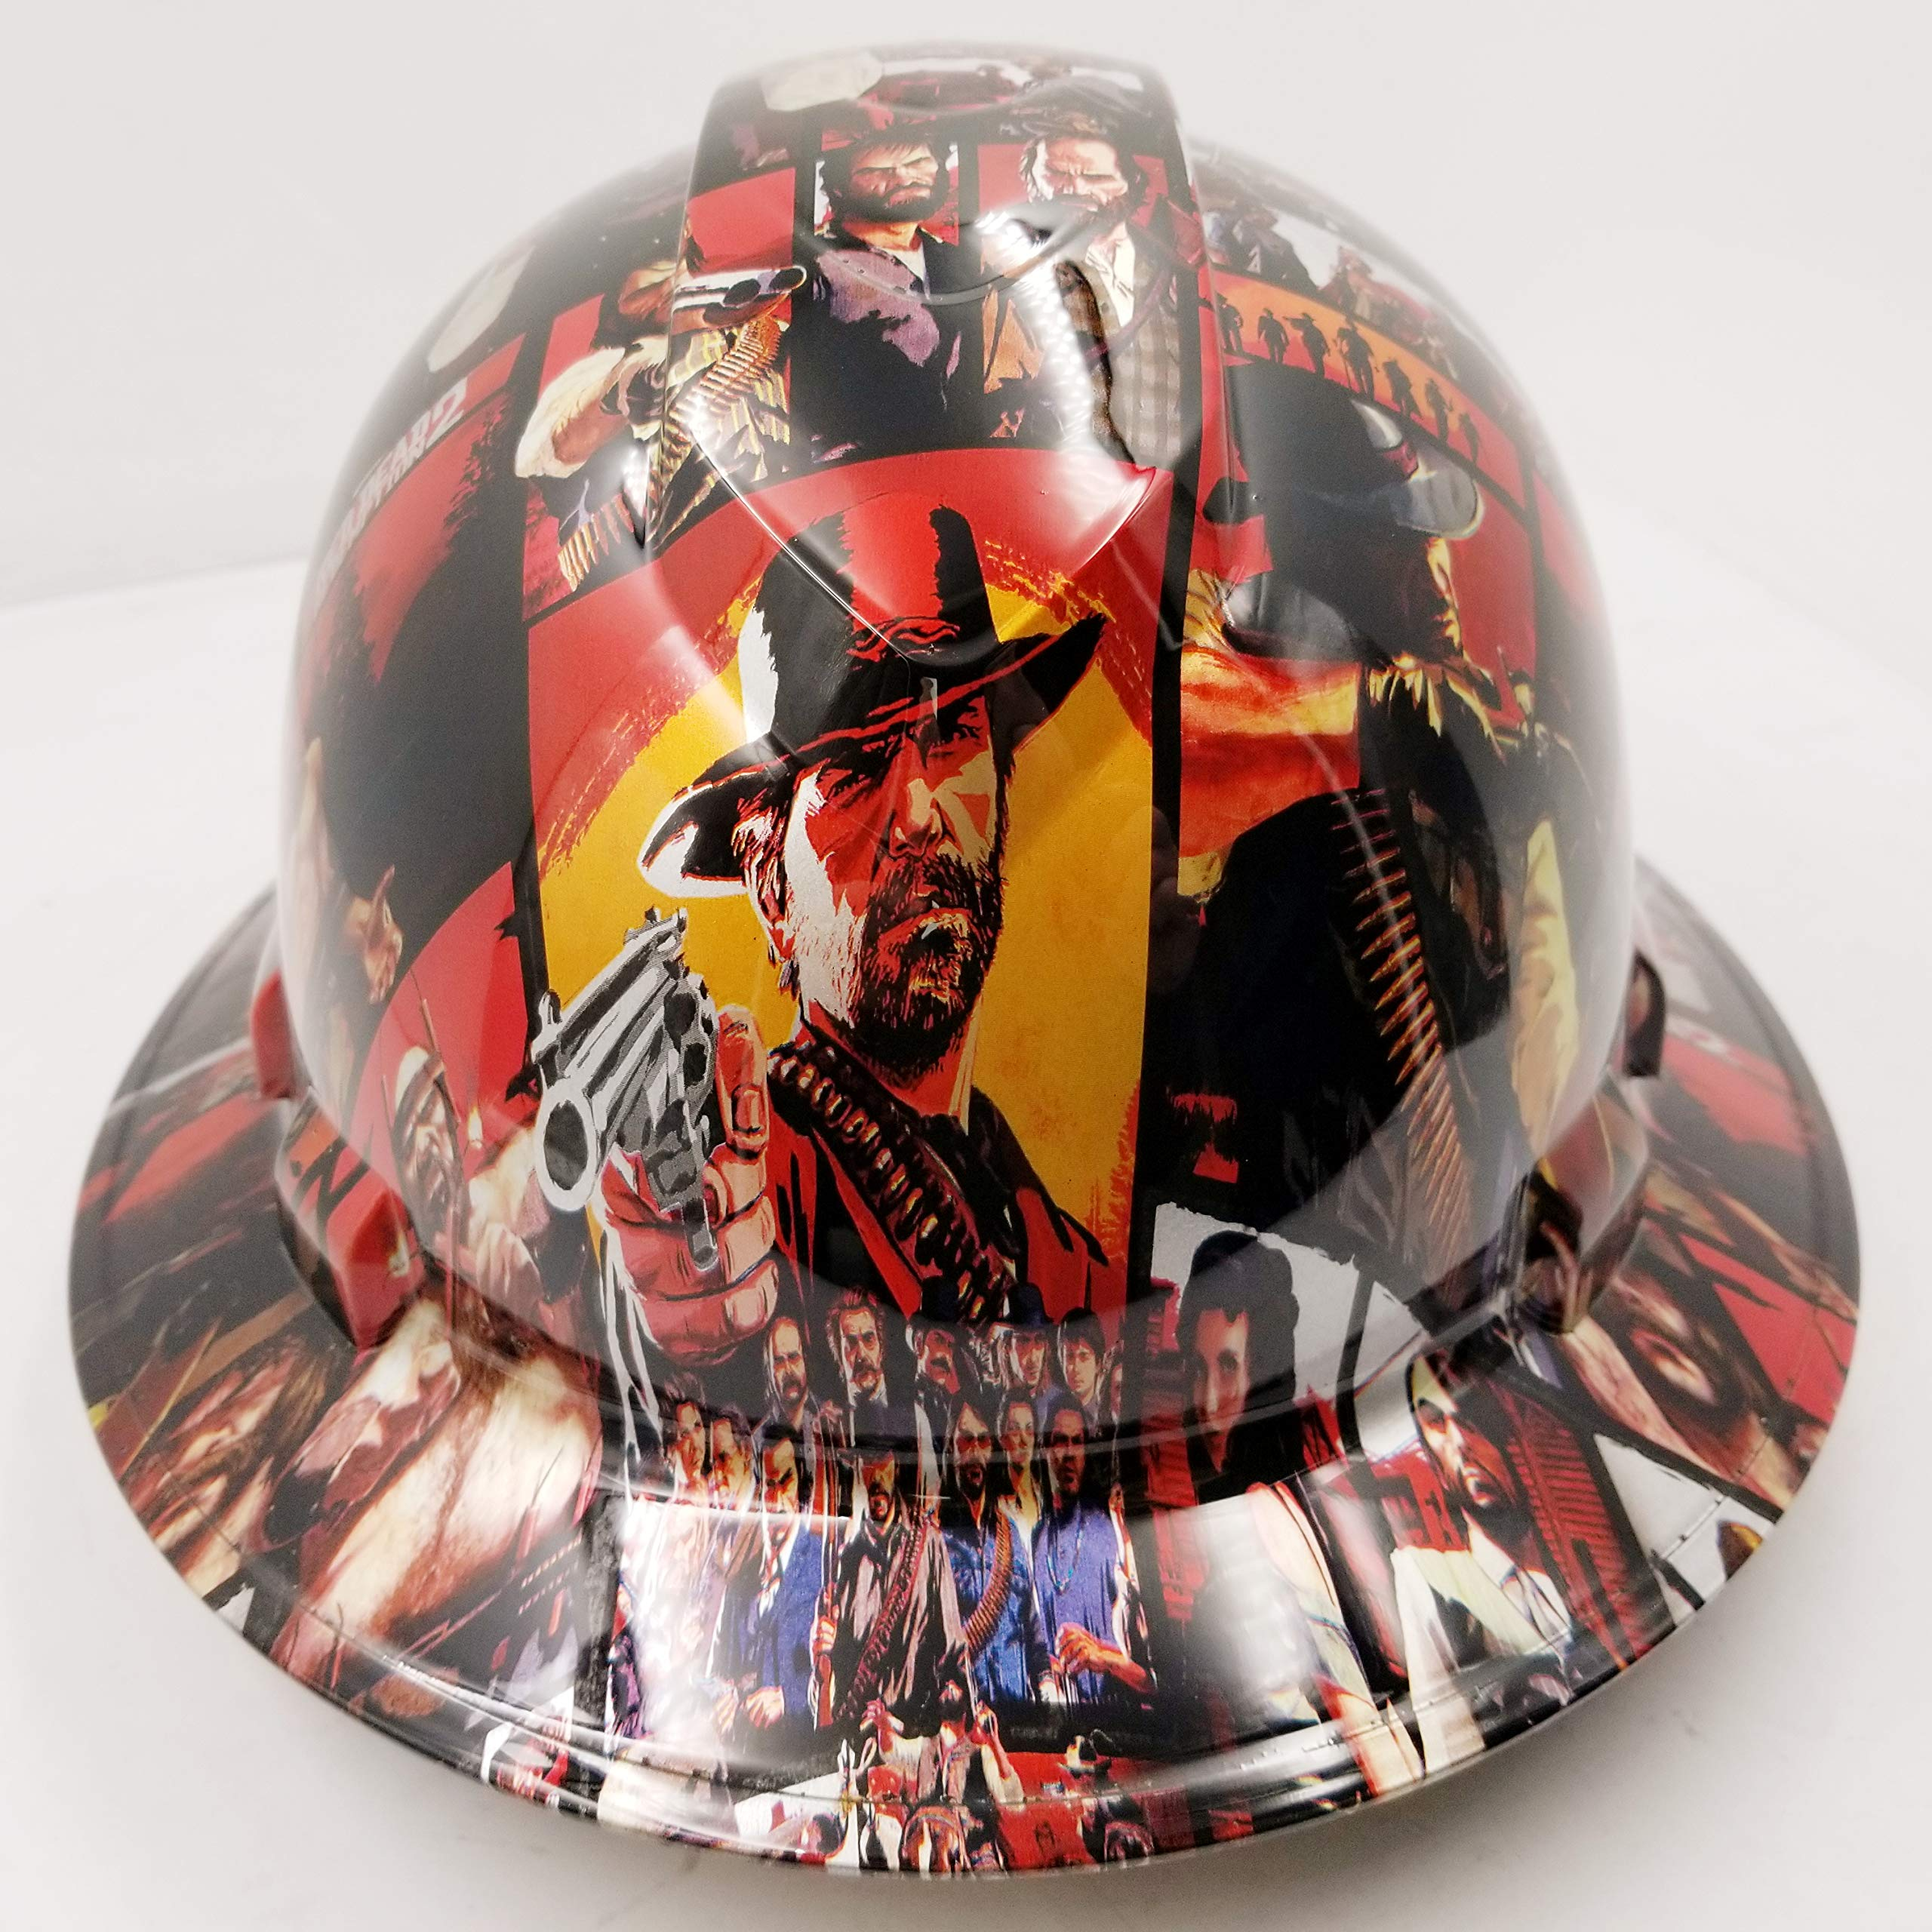 Wet Works Imaging Customized Pyramex Full Brim RED Dead Redemption 2 Hard HAT with Ratcheting Suspension Custom LIDS Crazy Sick Construction PPE